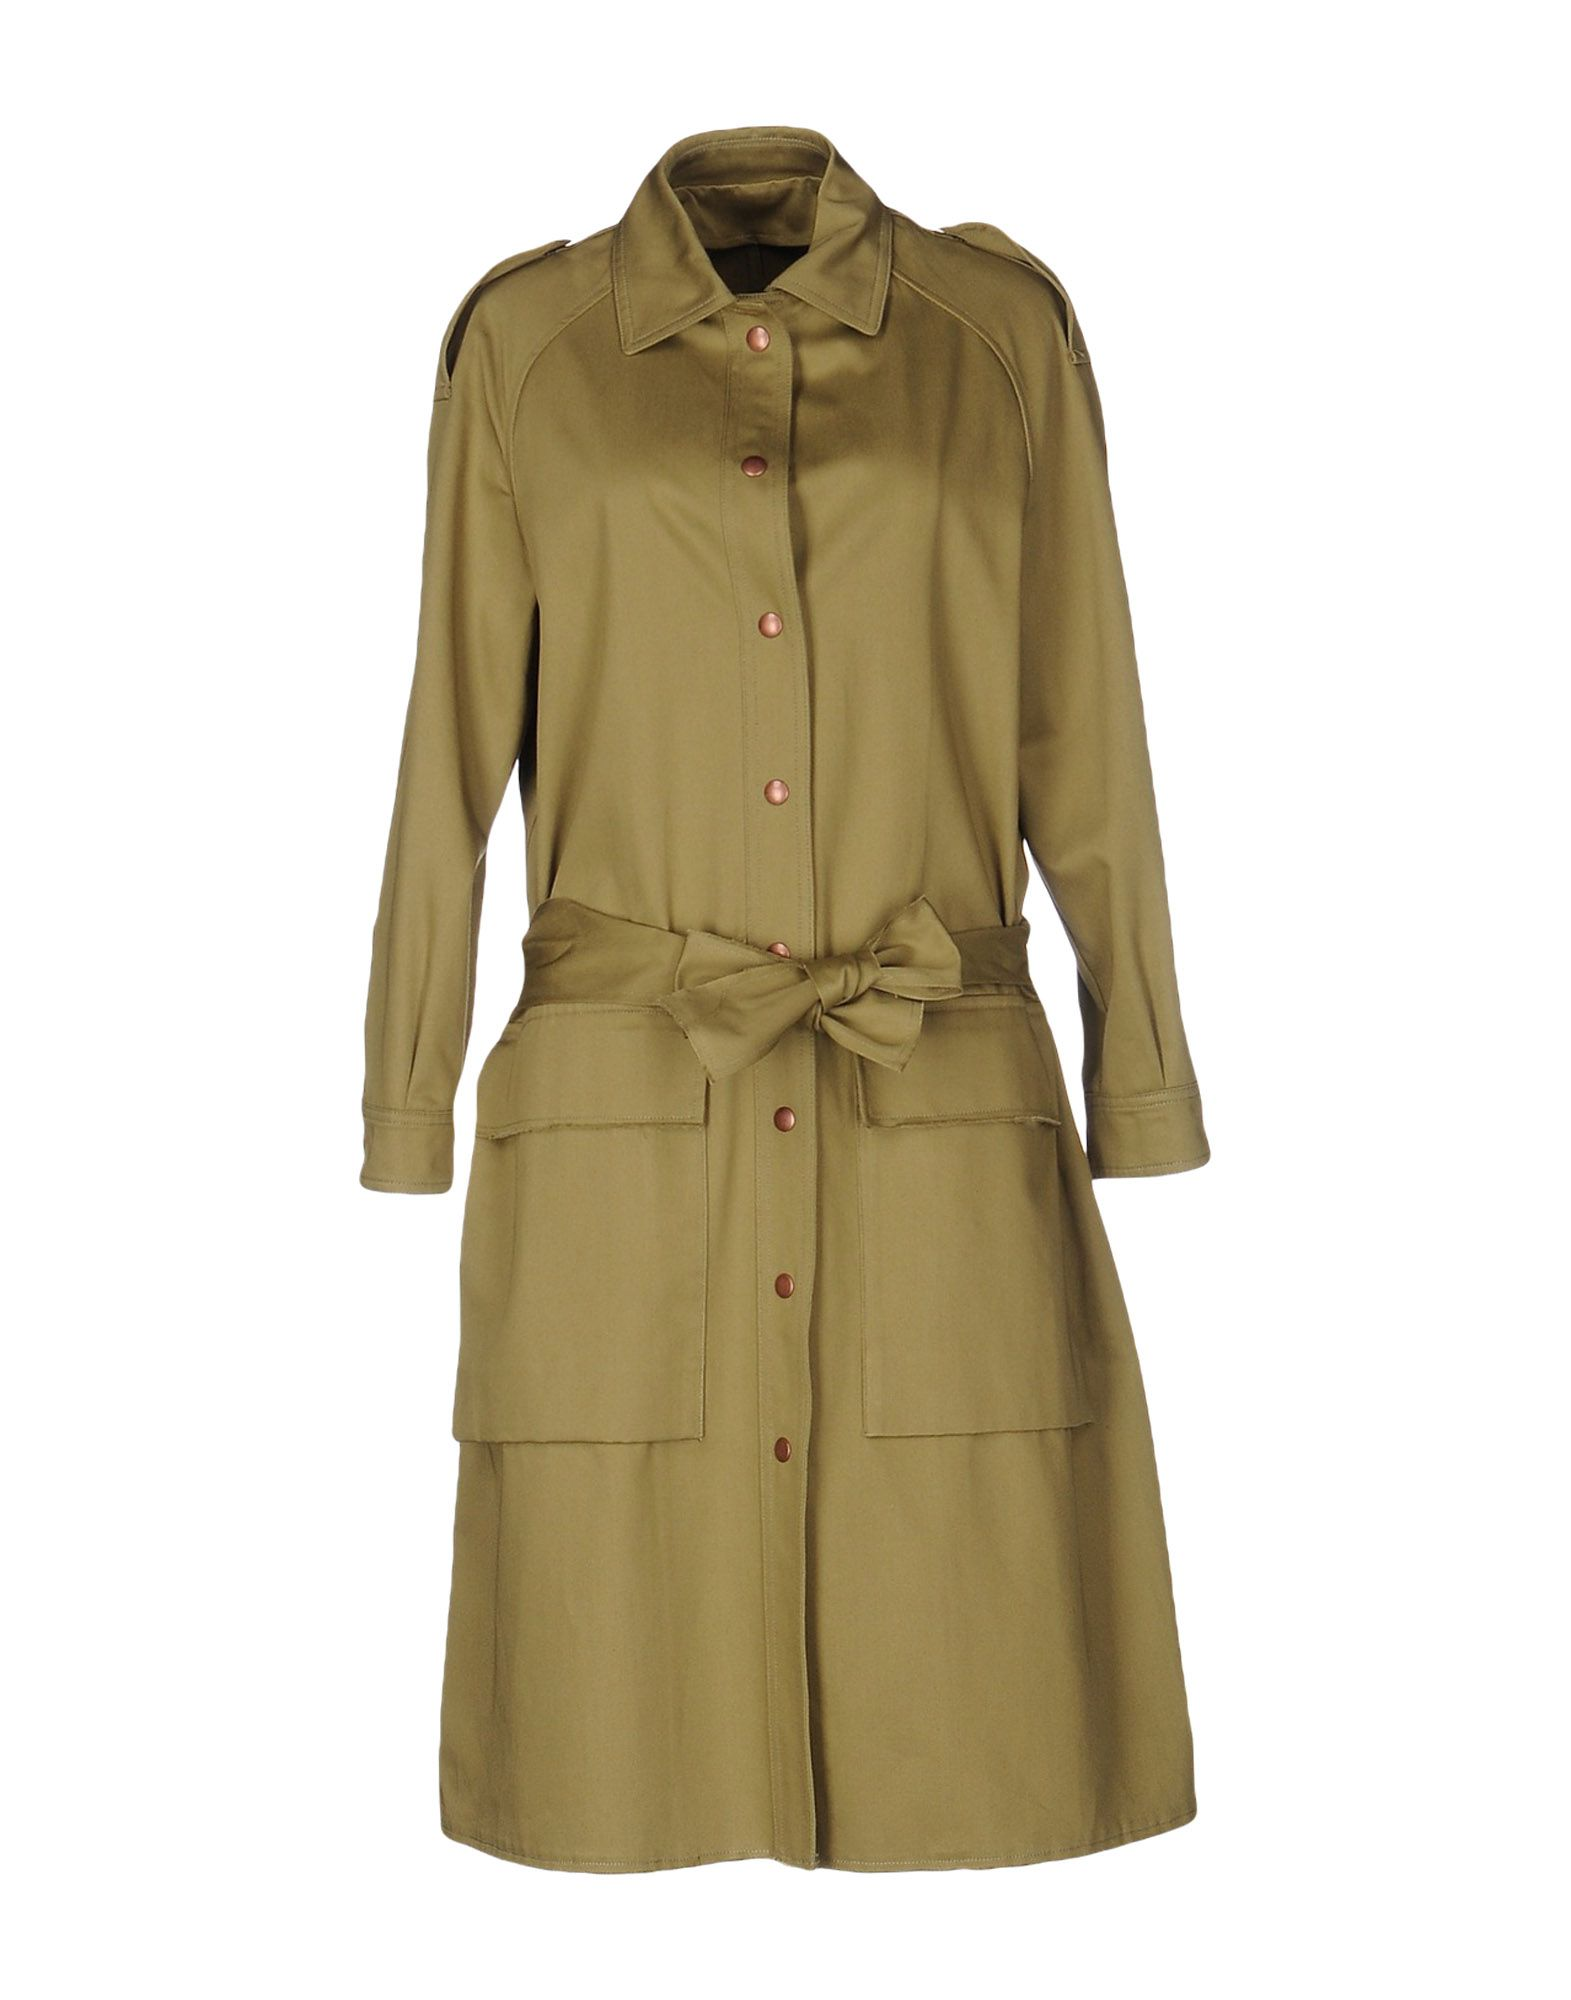 COVERT Belted Coats in Military Green